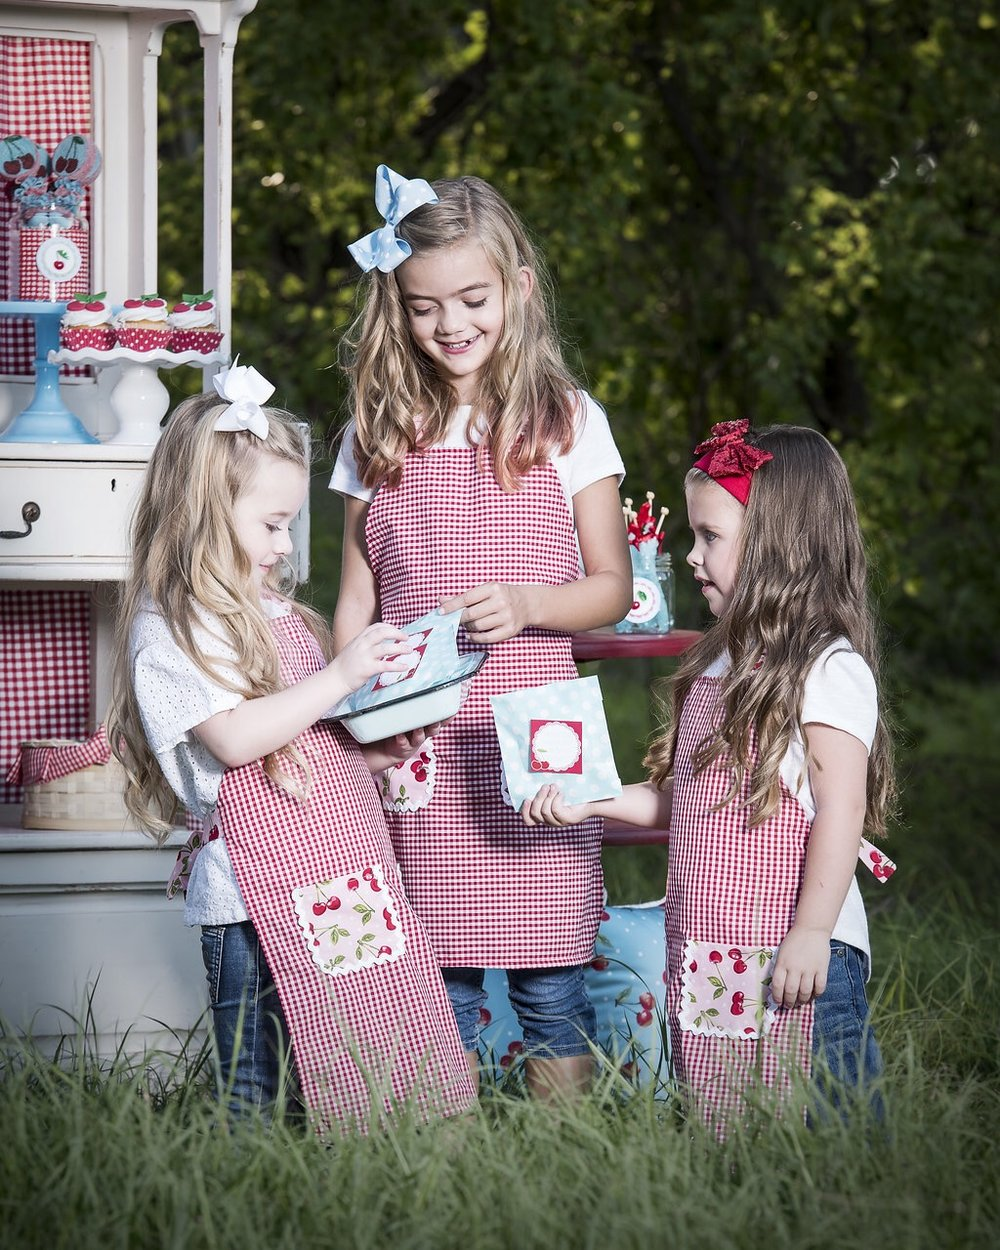 Love the idea of giving each girl a cute Cherry apron to match the Cherry on Top party theme. Such a fantastic party favor idea for girls. See lots more from this summer party on Mint Event Design in Austin Texas www.minteventdesign.com #summerparties #partyideas #kidspartyideas #partyplanning #birthdaypartyideas #kidsparty #cherryparty